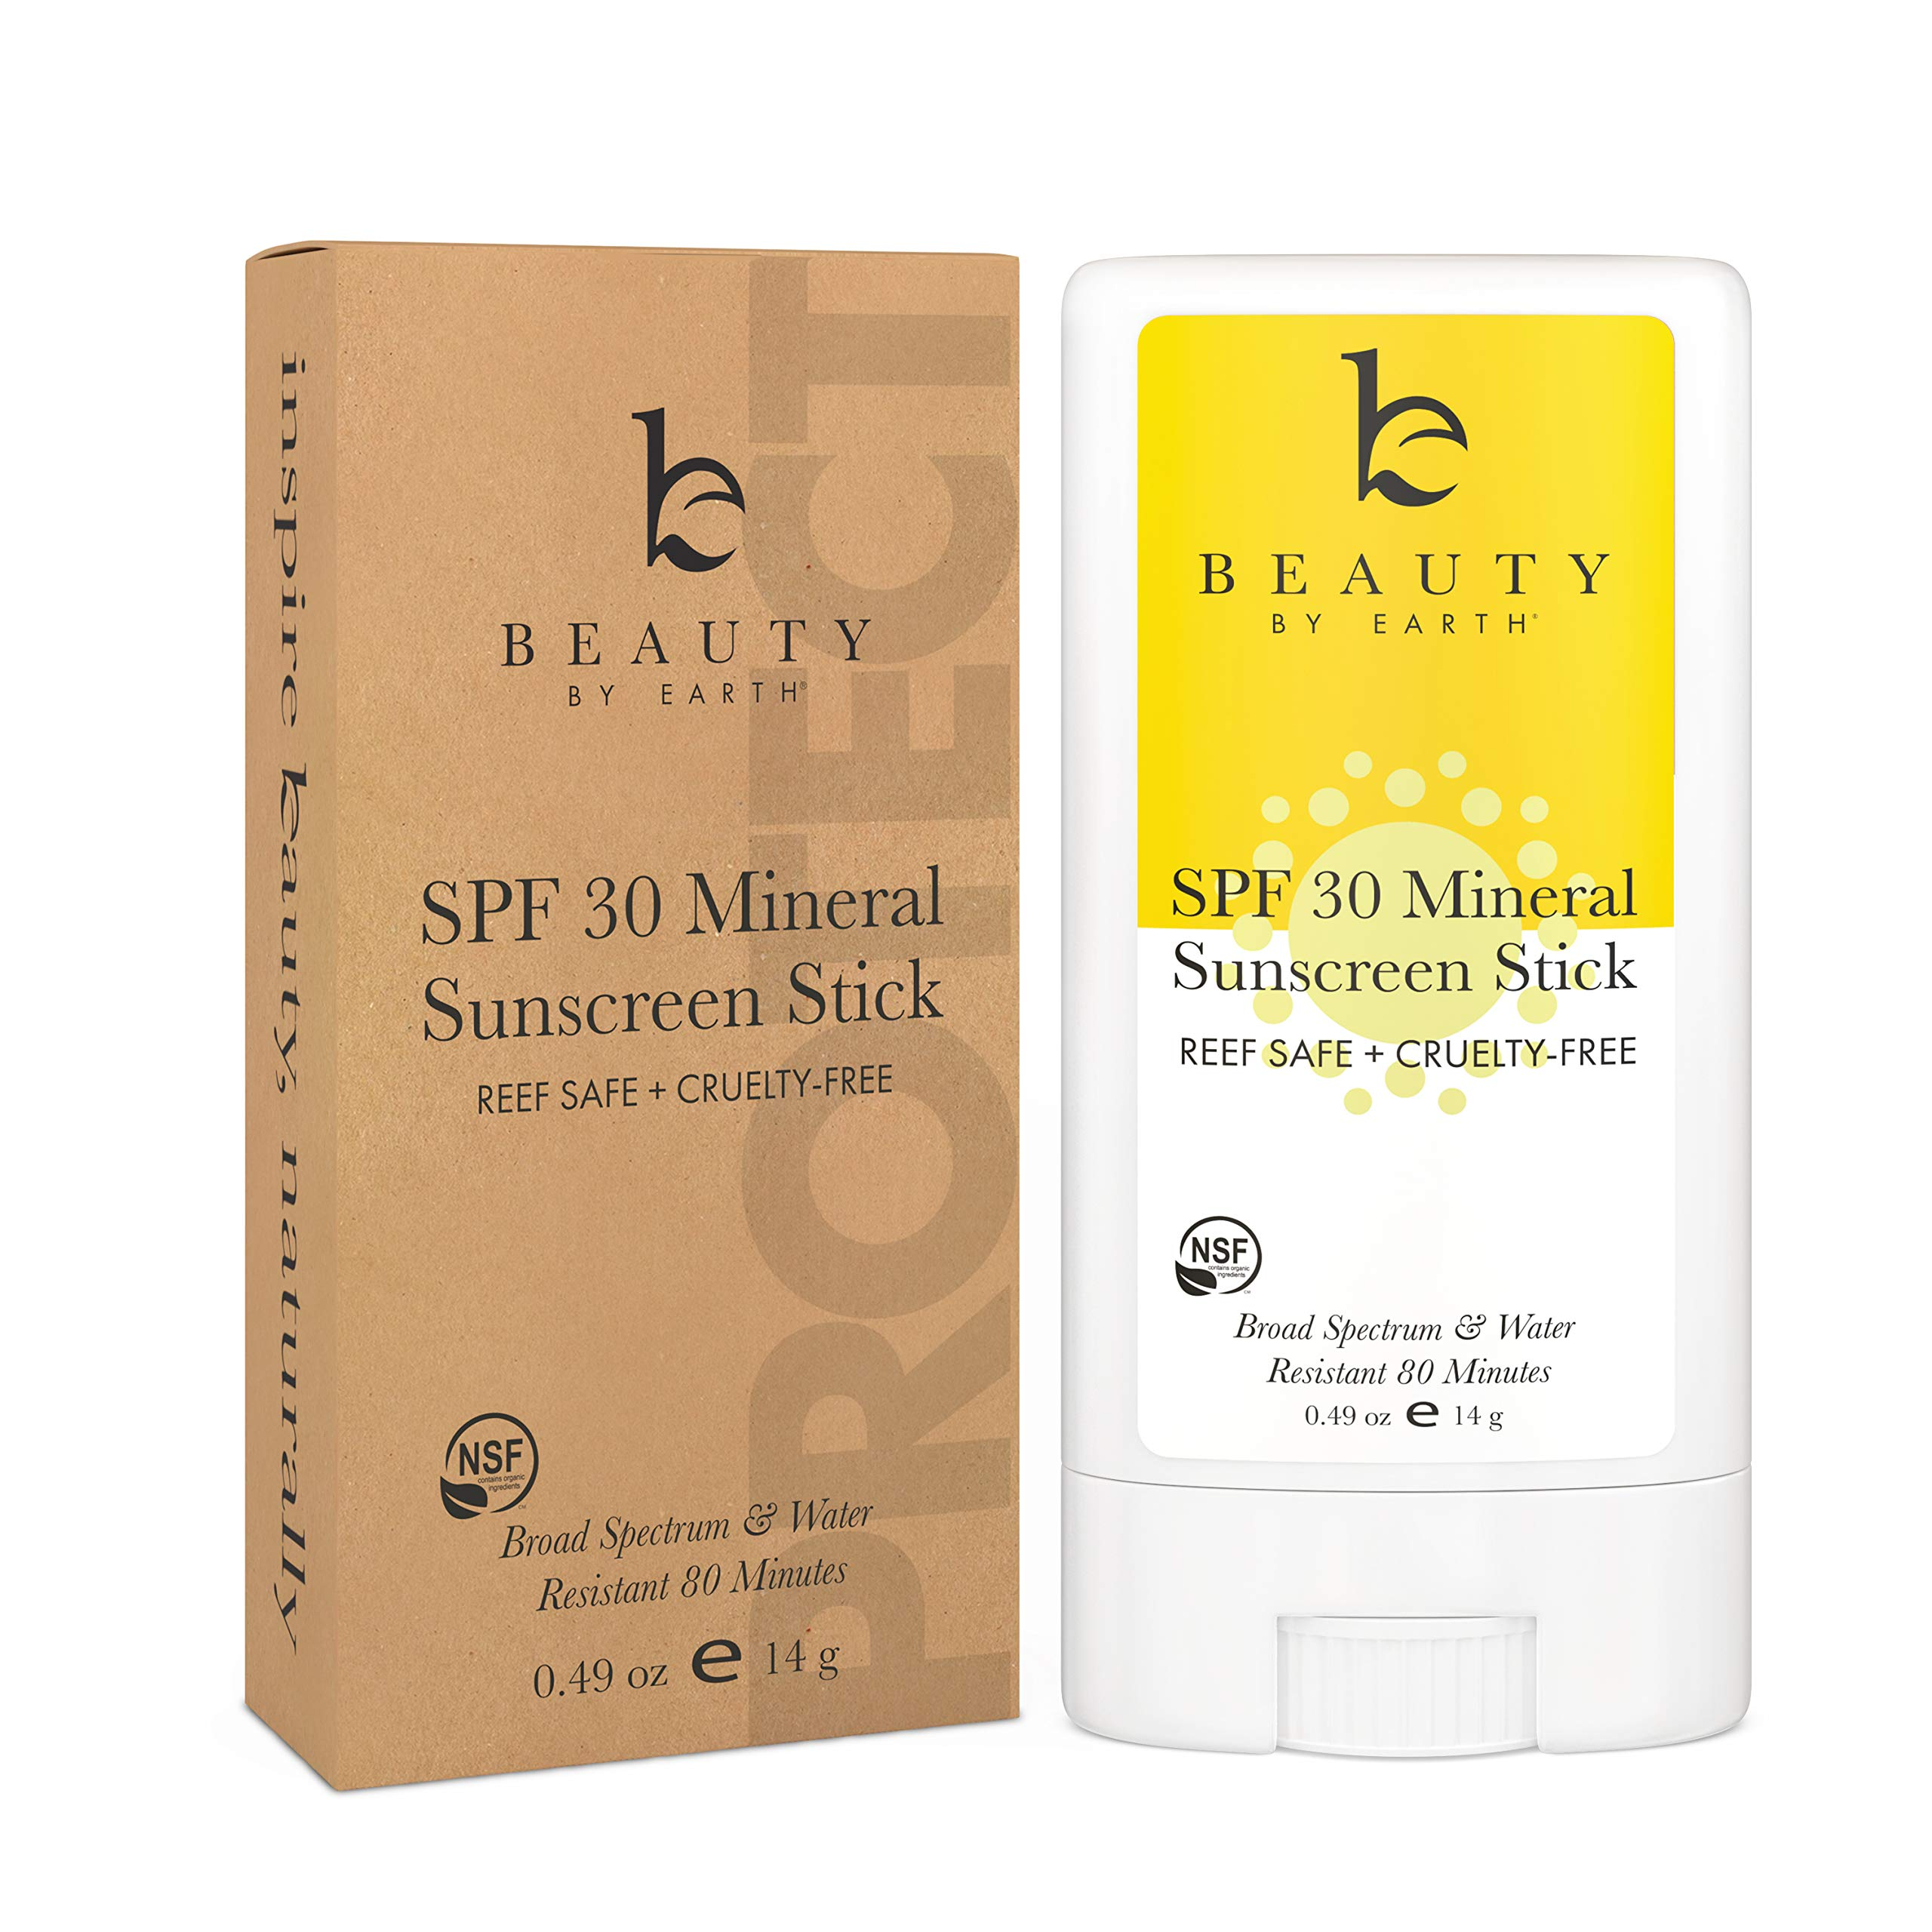 Mineral Sunscreen Stick - SPF 30 Zinc Oxide Sunscreen Lotion Stick Made with Organic Ingredients, Best Sun Protection Travel Sunscreen Face and Body, Reef Friendly Sunscreen, Water Resistant